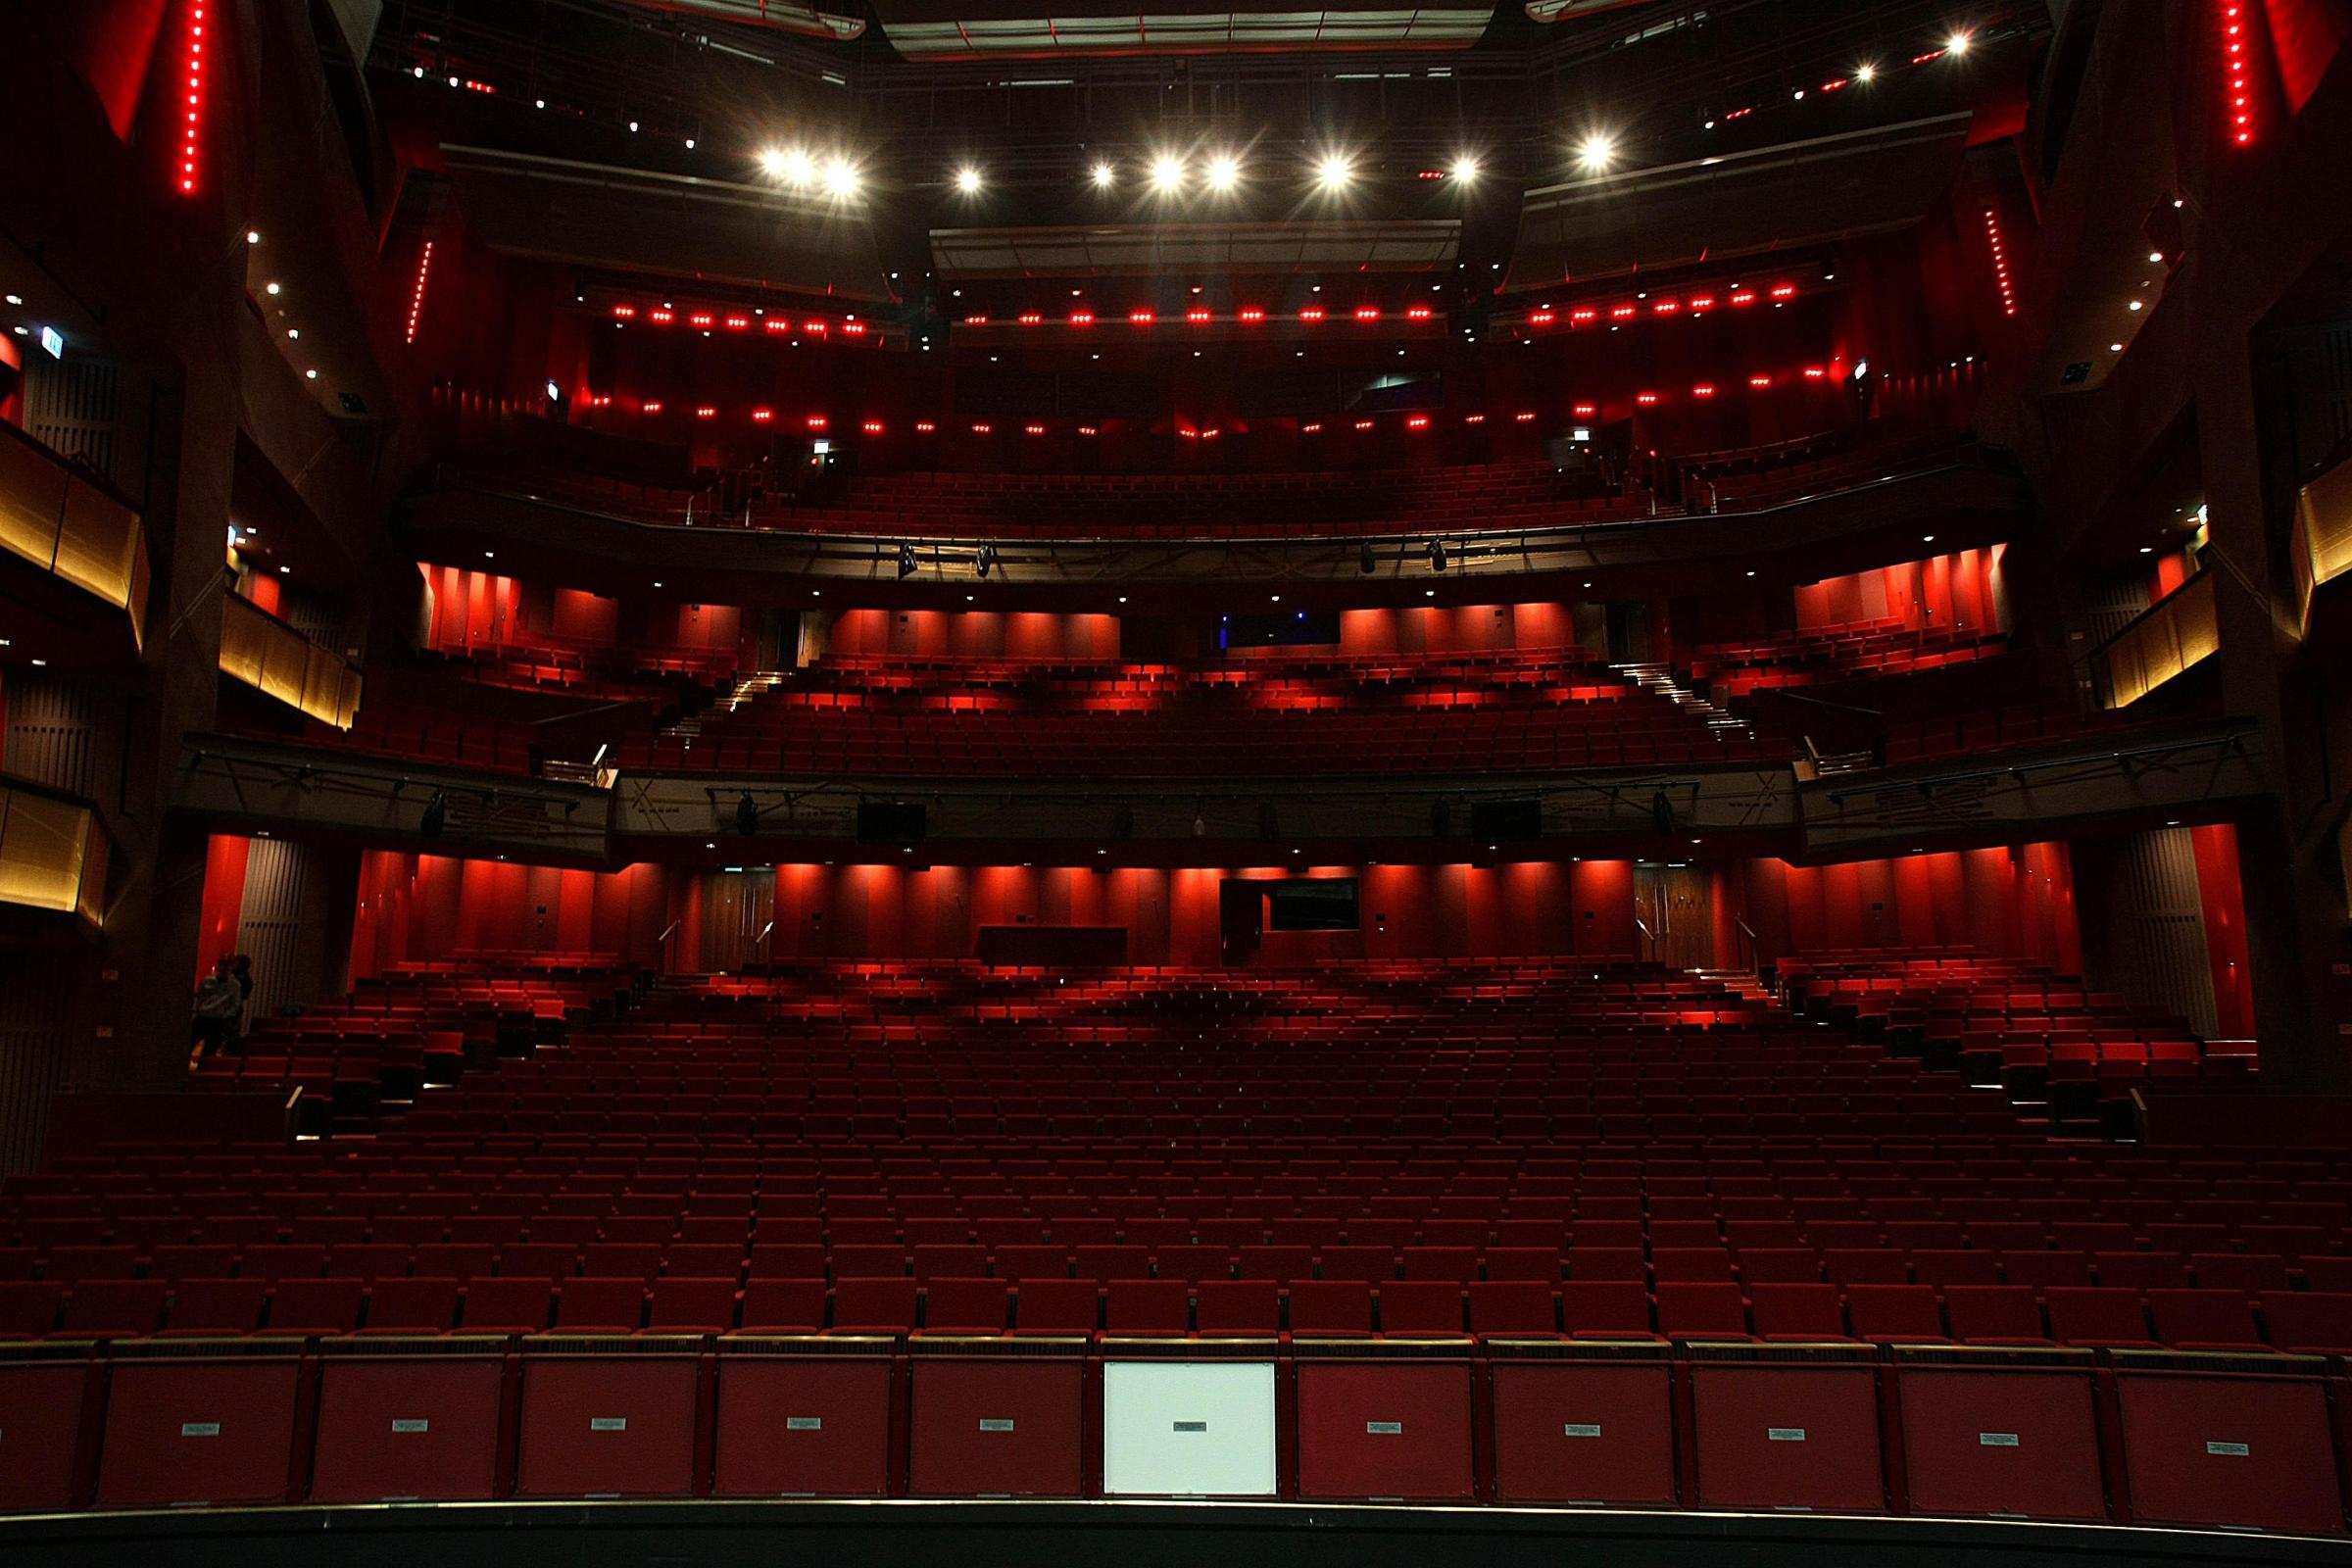 Dublin's new 2,000-seater Grand Canal Theatre, which was previewed to media before the official opening on March 18.